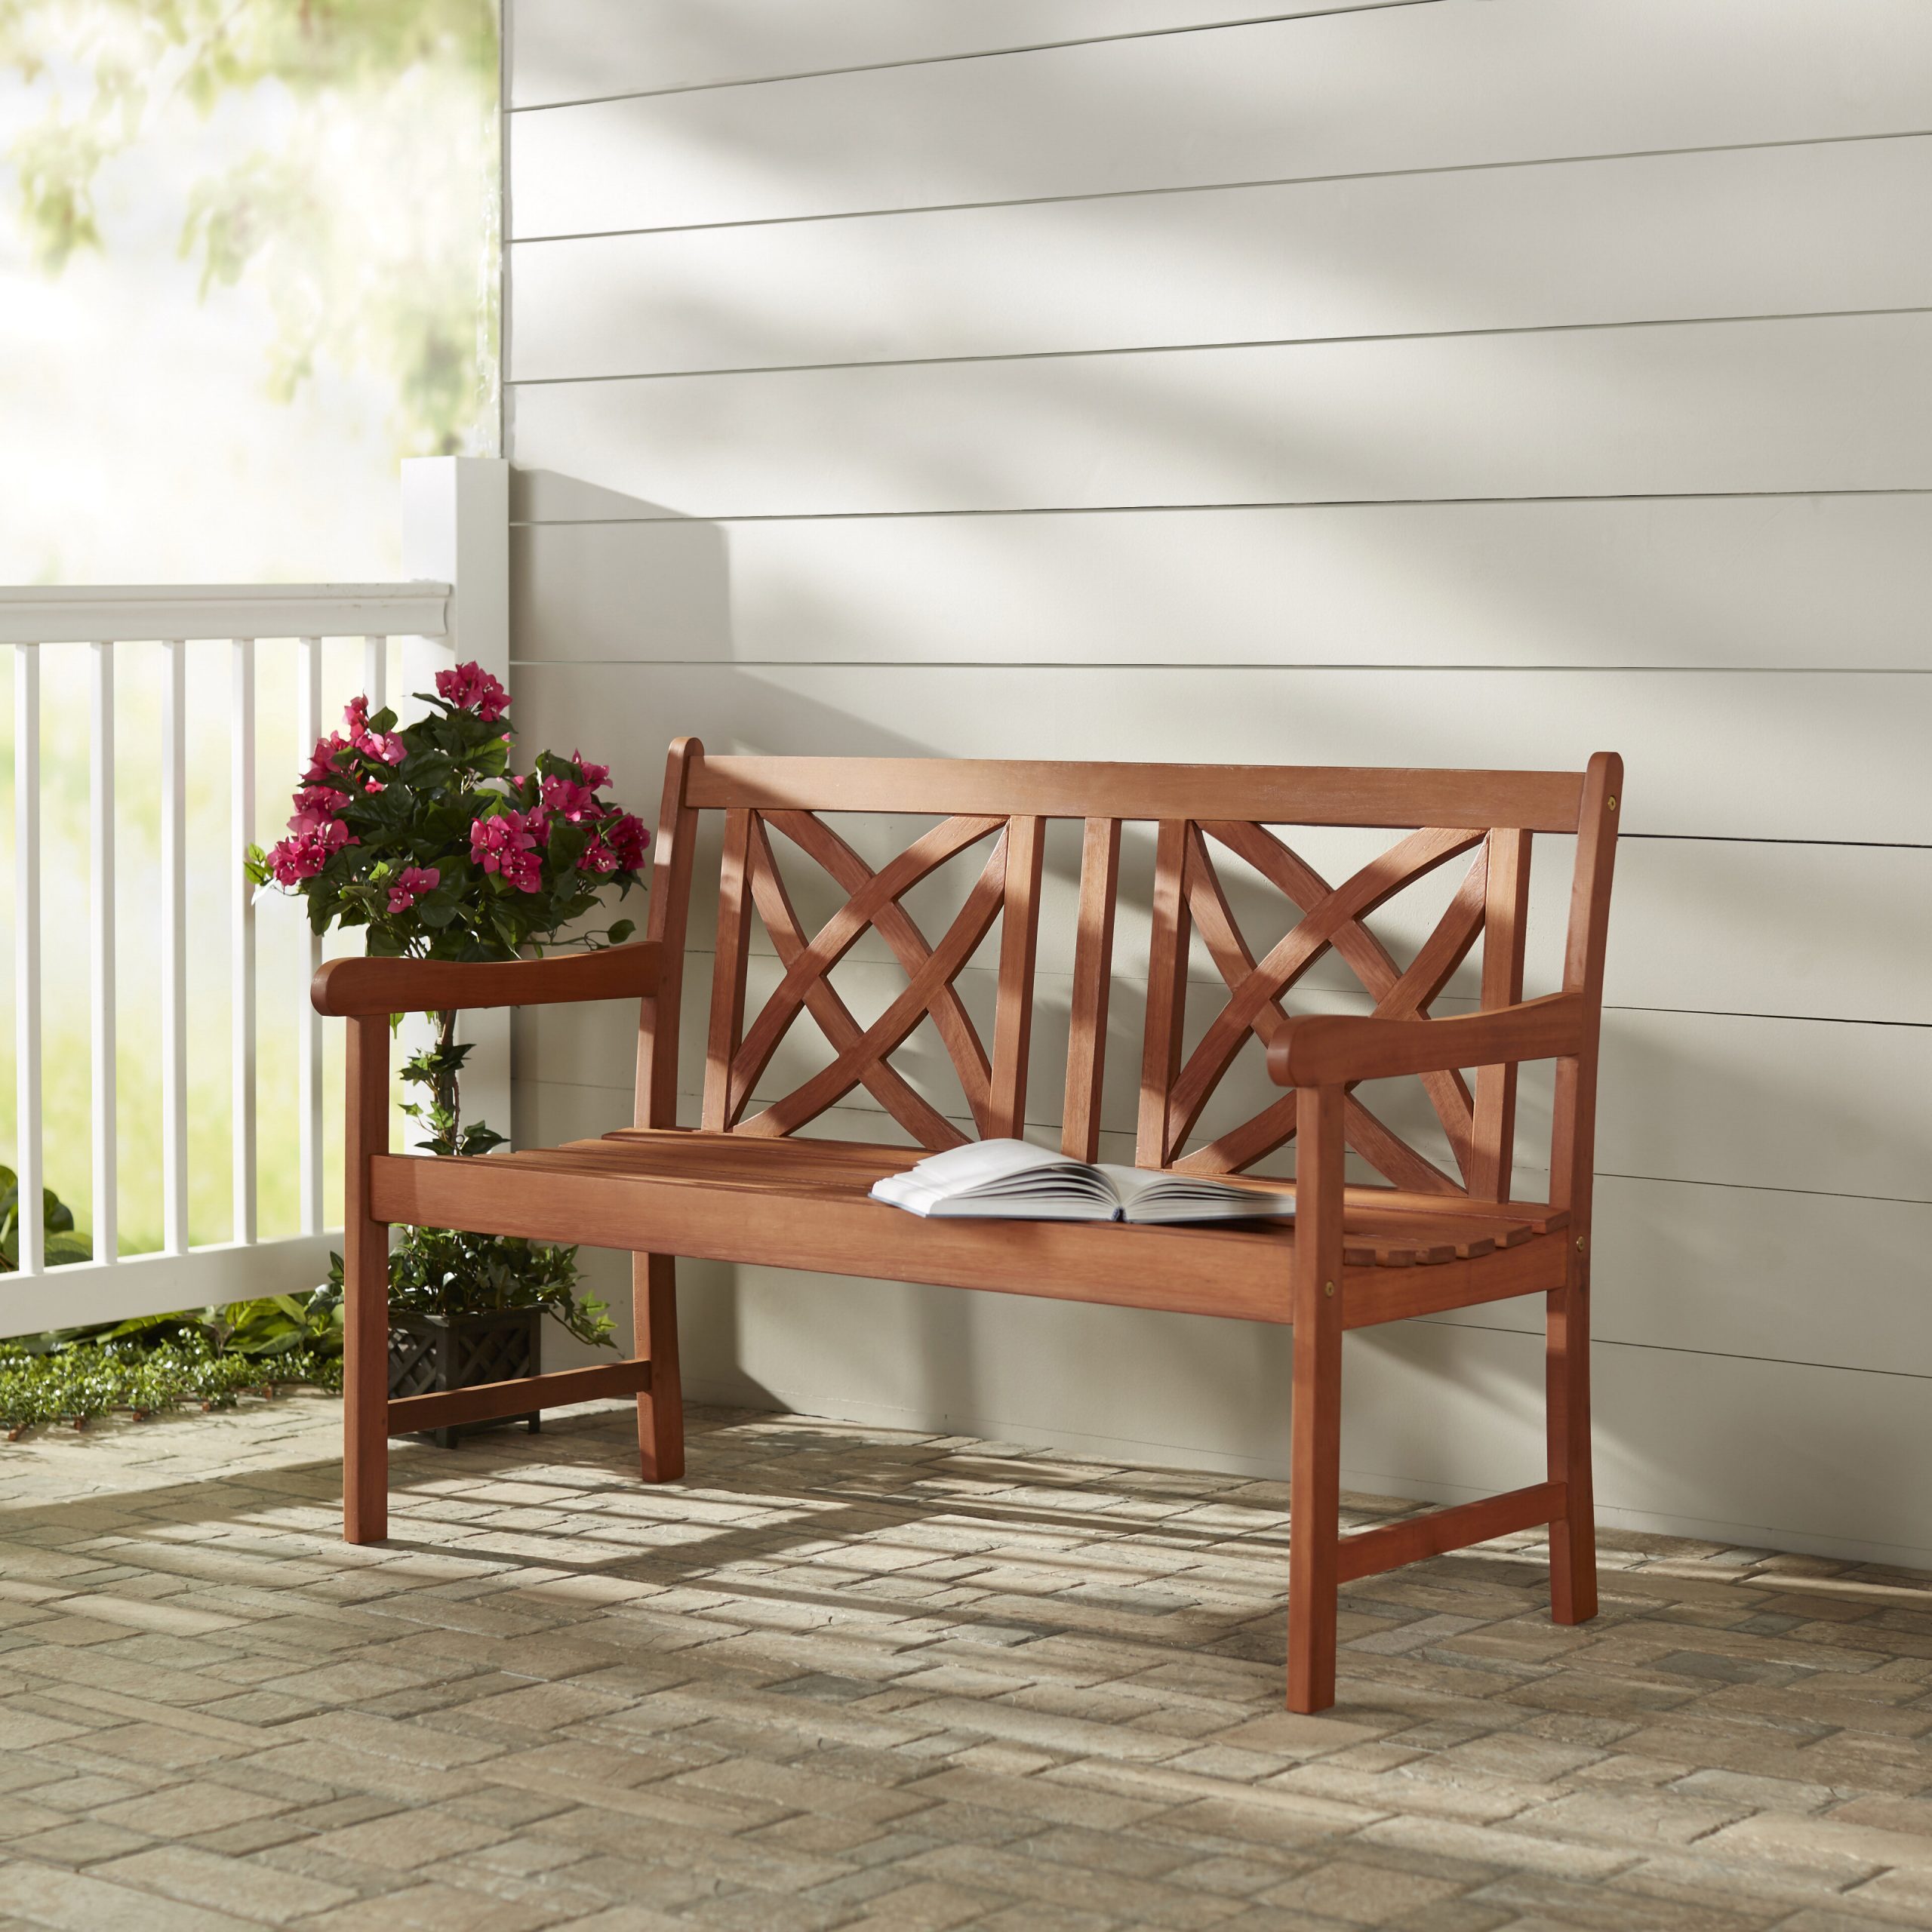 Maliyah Wooden Garden Bench With Regard To Manchester Solid Wood Garden Benches (View 14 of 25)